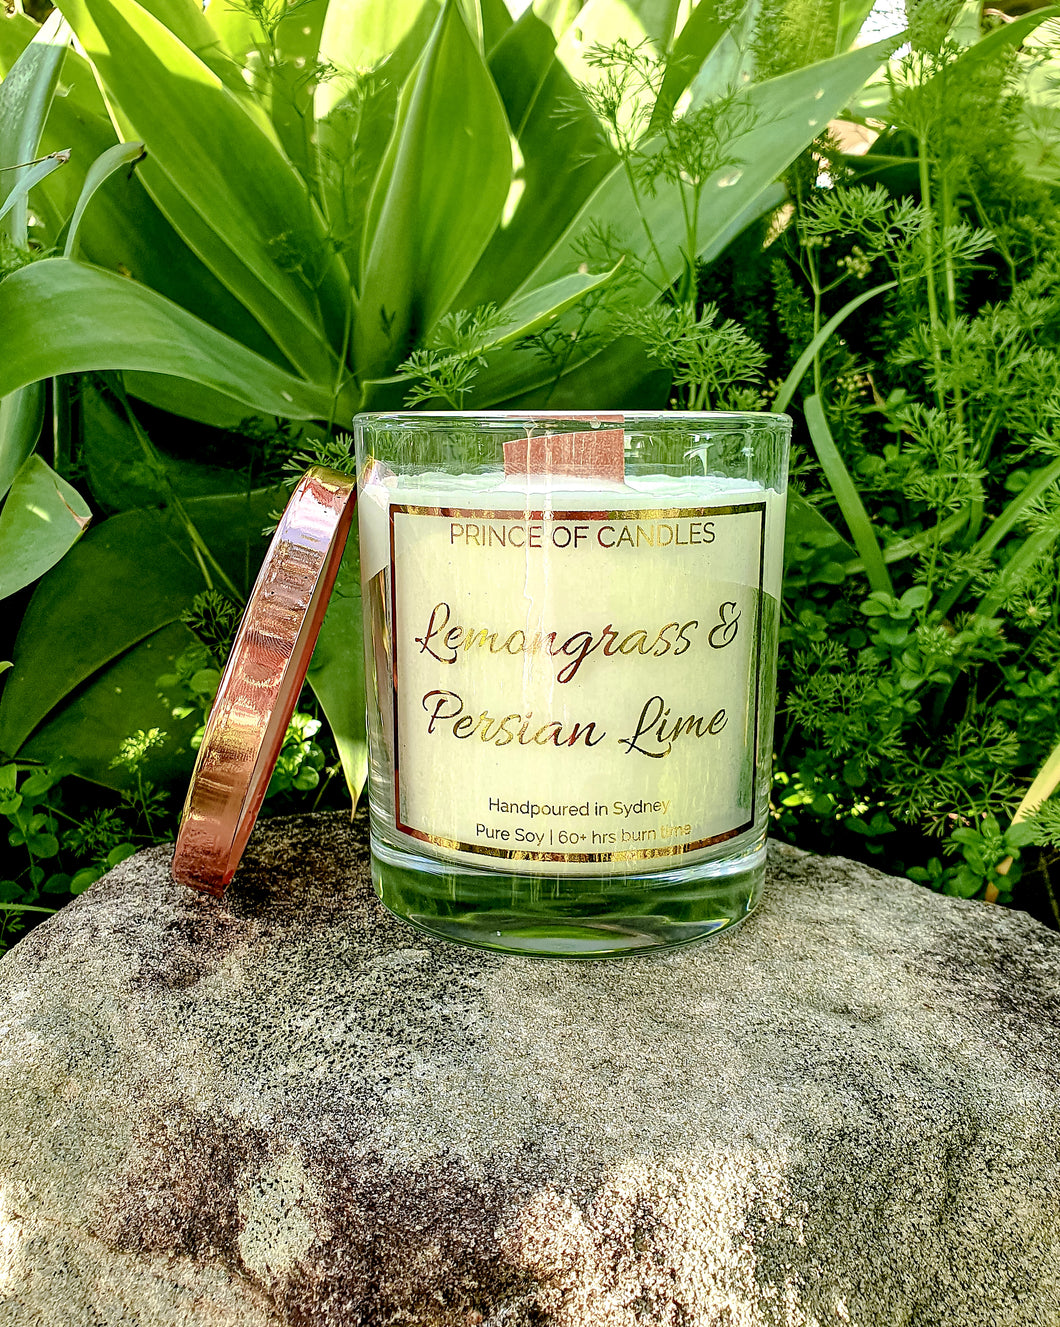 Lemongrass and Persian Lime Scented Candle - Prince of Candles